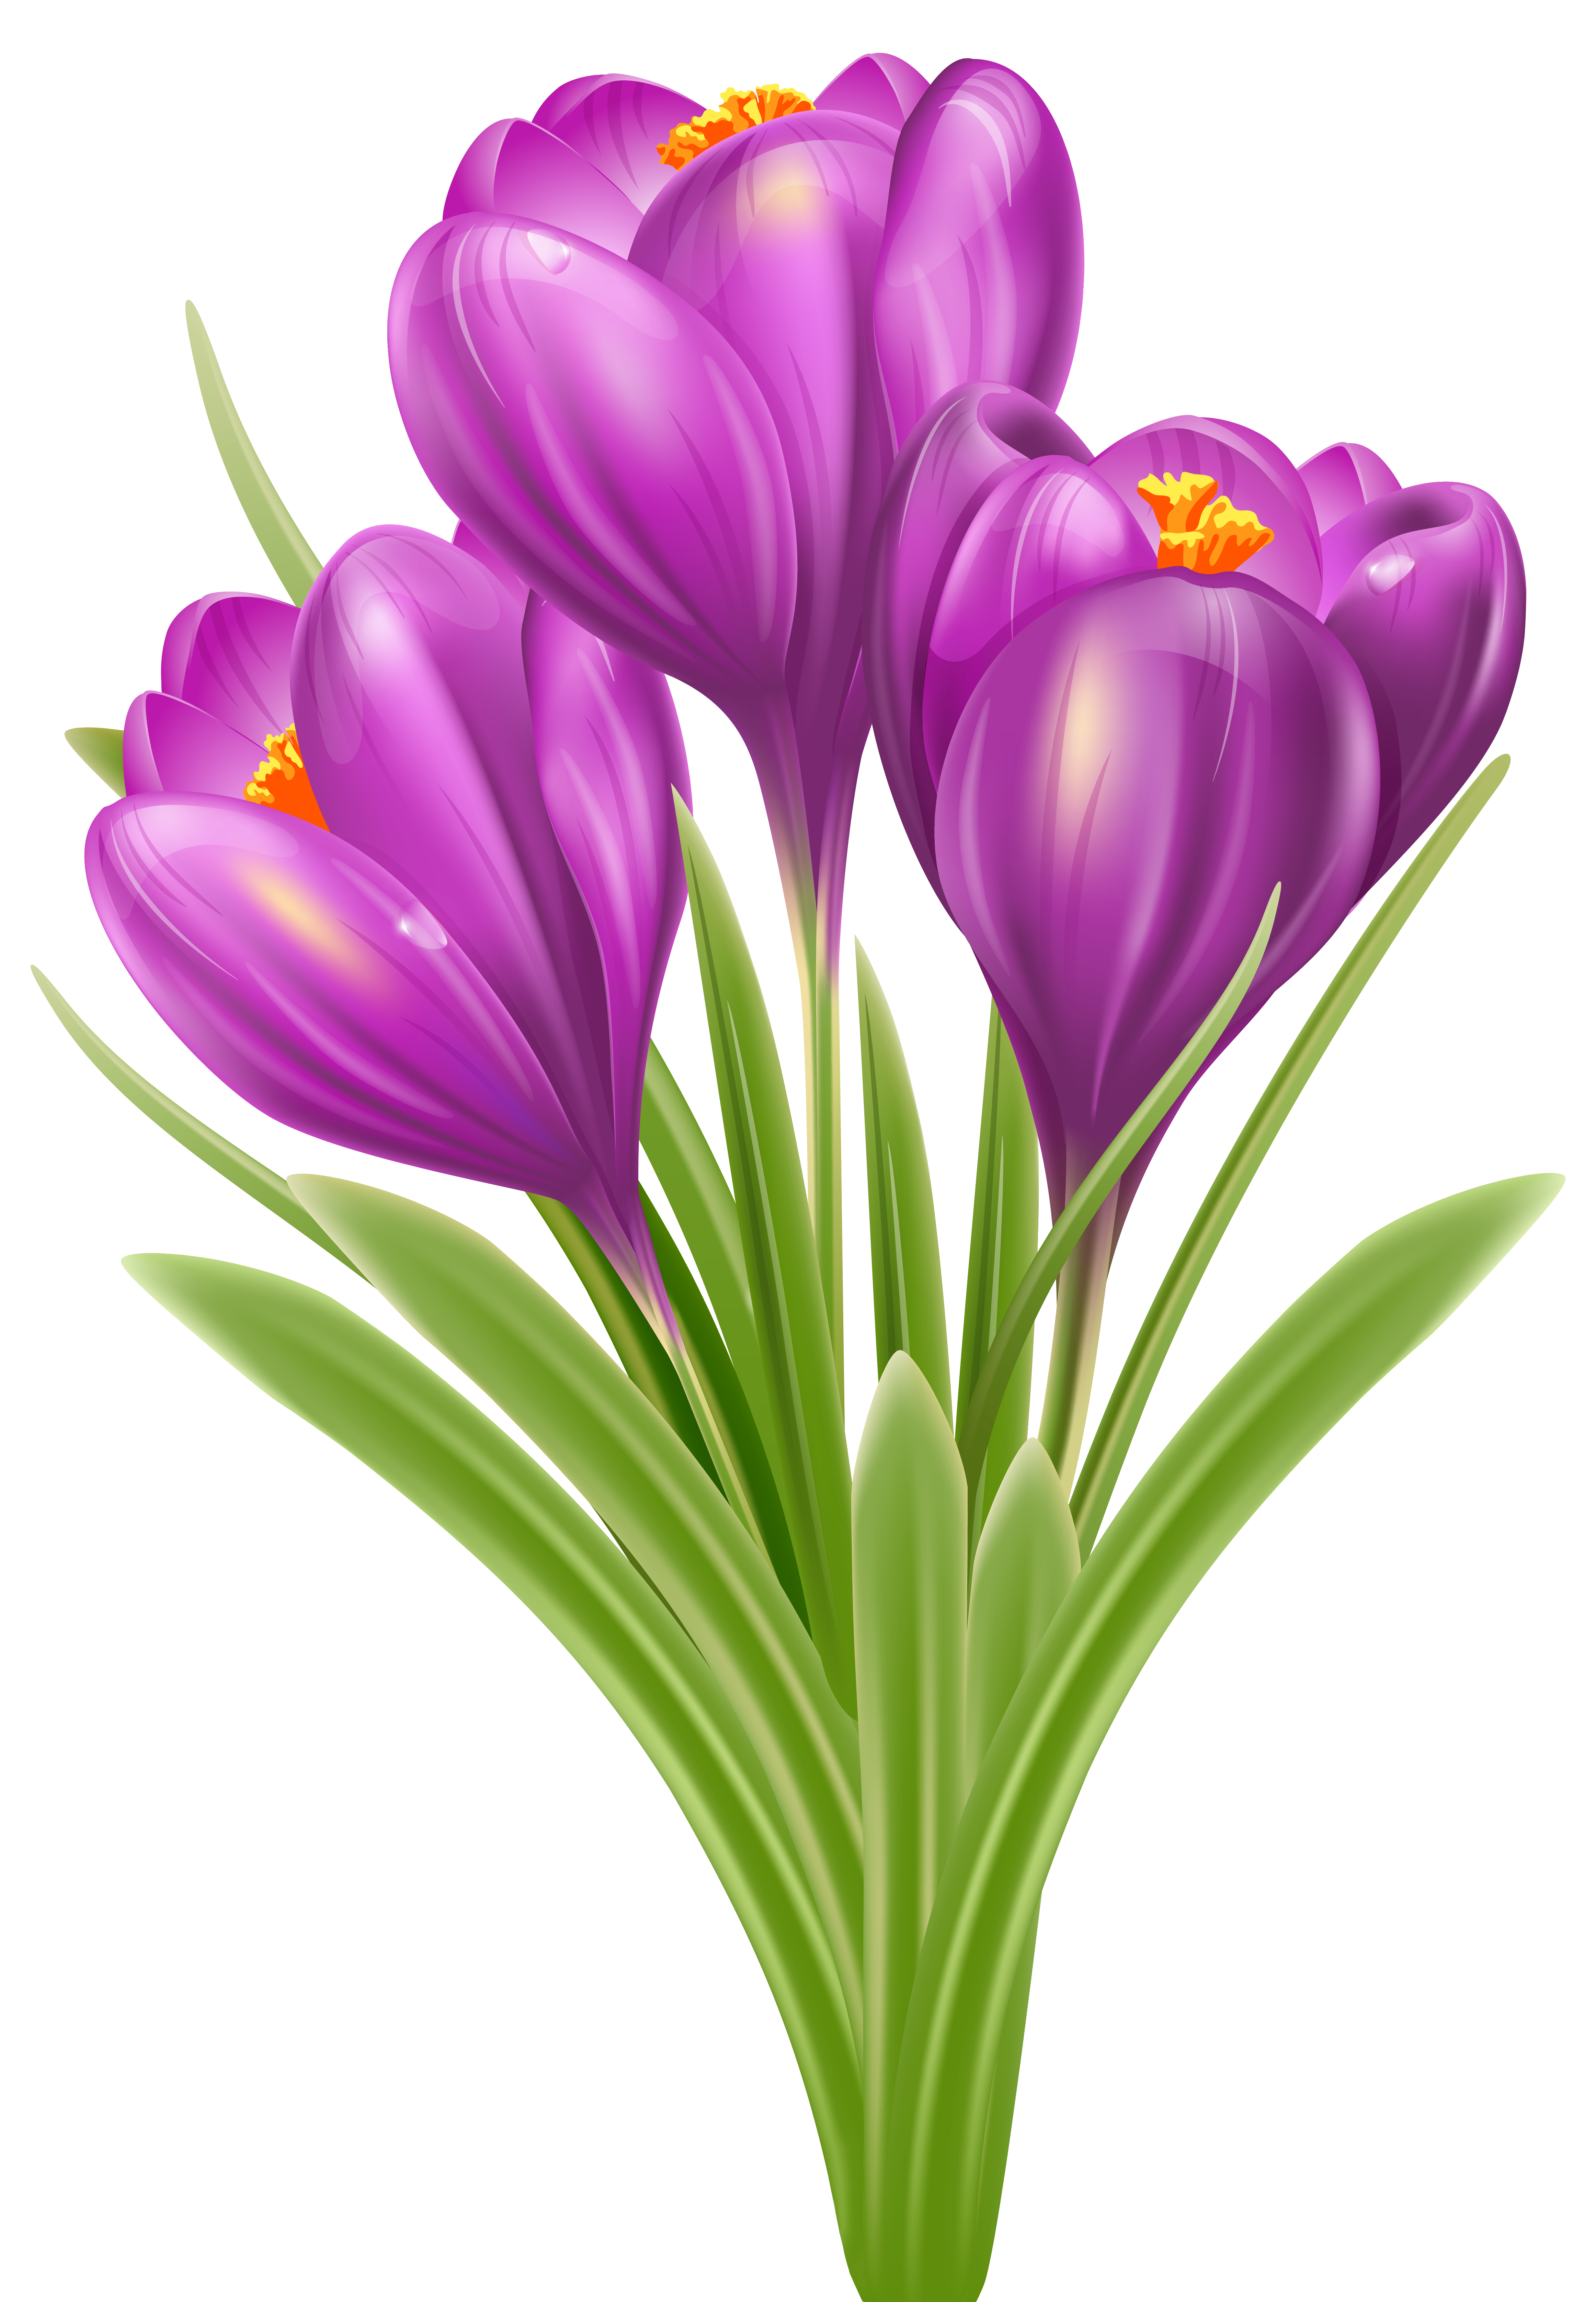 Crocus clipart free image royalty free download Spring Crocus PNG Image | Gallery Yopriceville - High-Quality ... image royalty free download